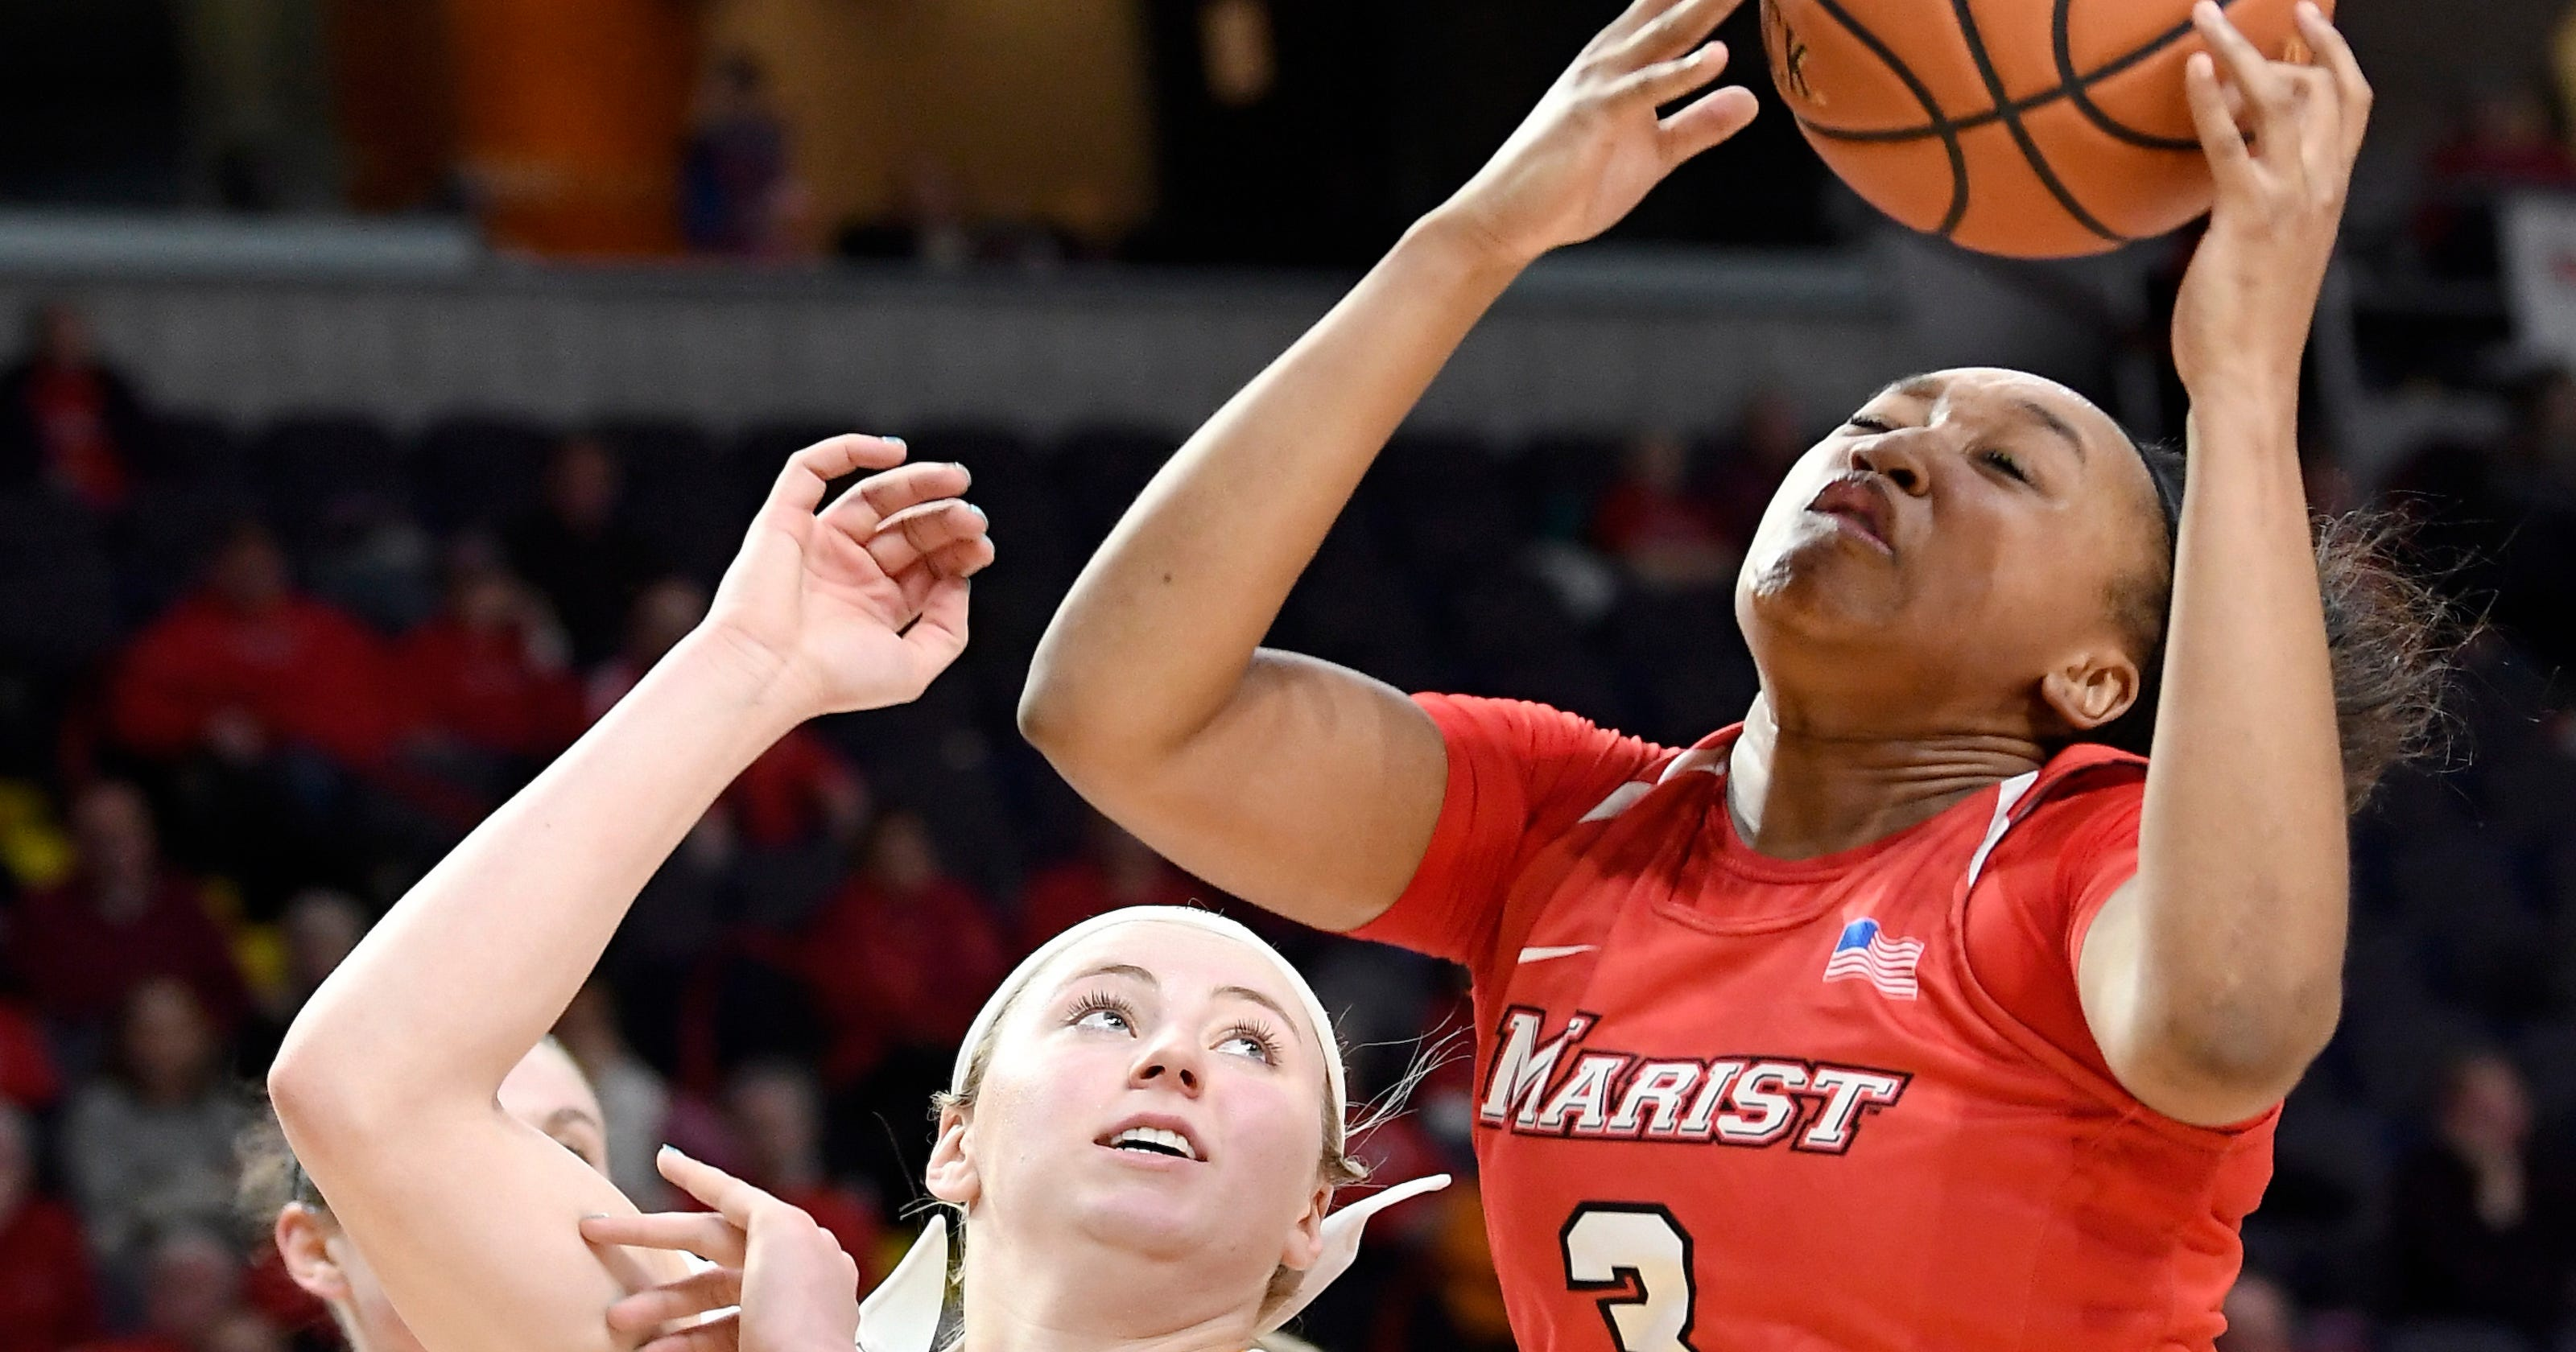 Marist women's basketball: Everything you need to know